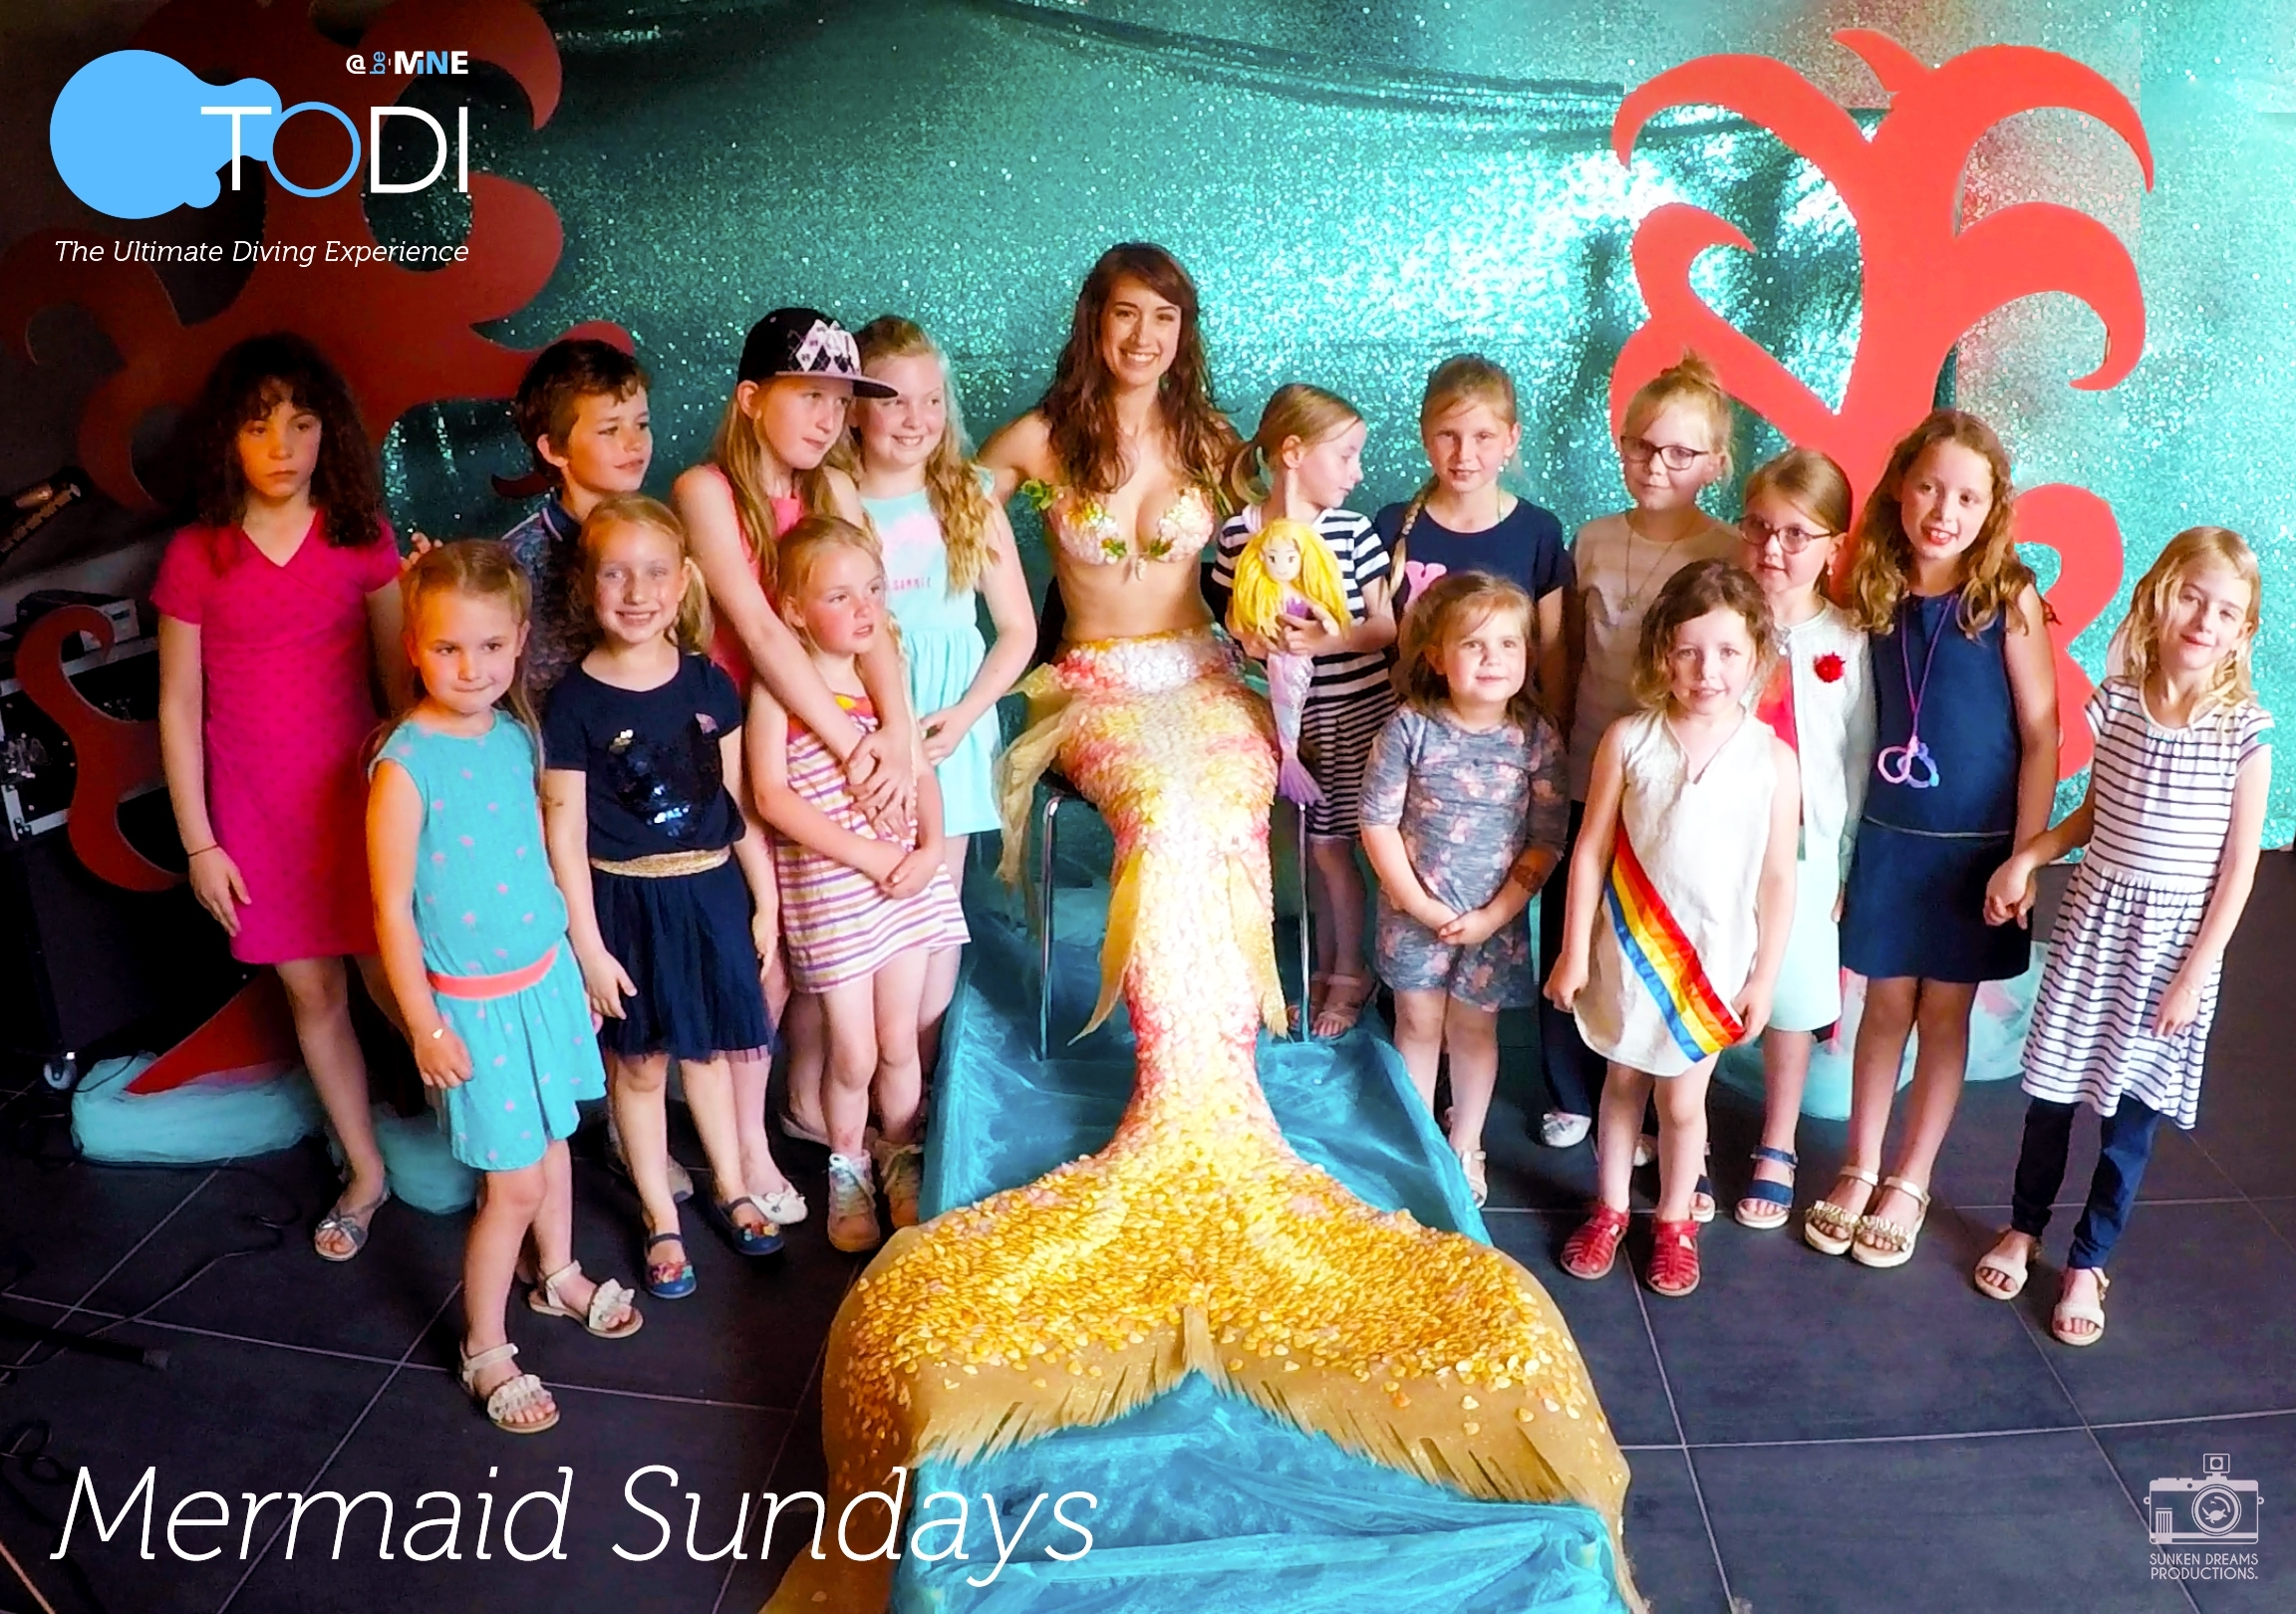 Mermaid-Sunday-Celine-Group-Photo